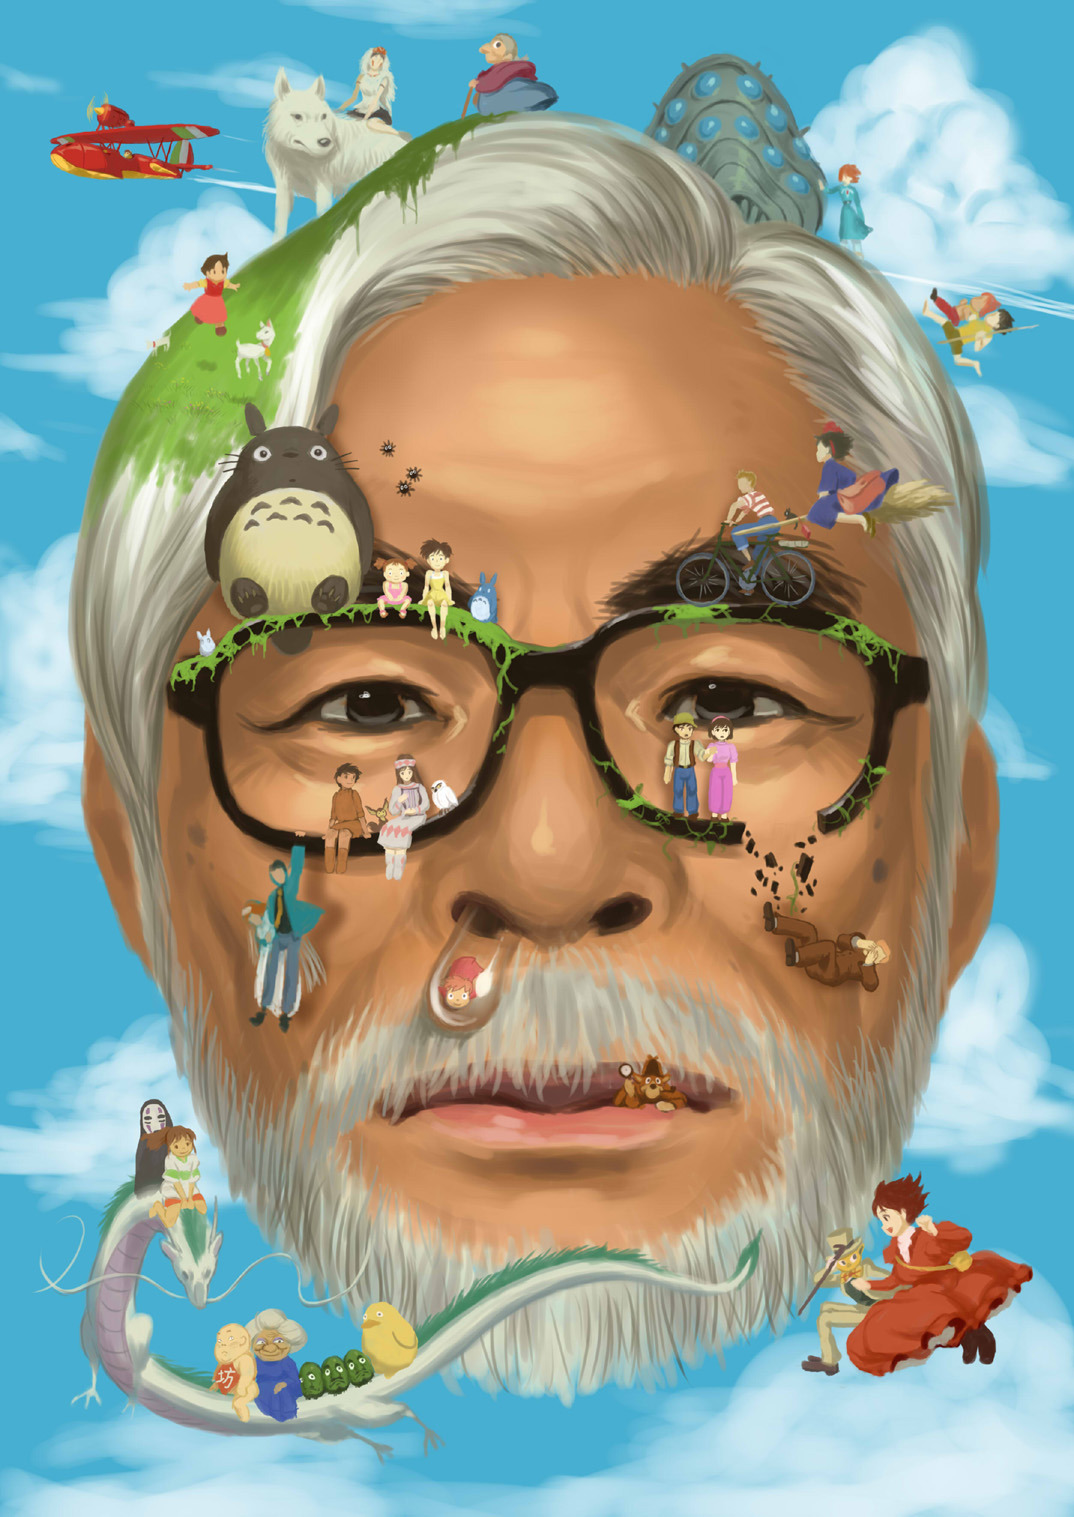 pirratta:  Hayao Miyazaki's masterpieces! :D  Erica I love You. I totally agree with you. This definitely describes ALL his movies. I think it's awesome that he always place the main character as a girl.